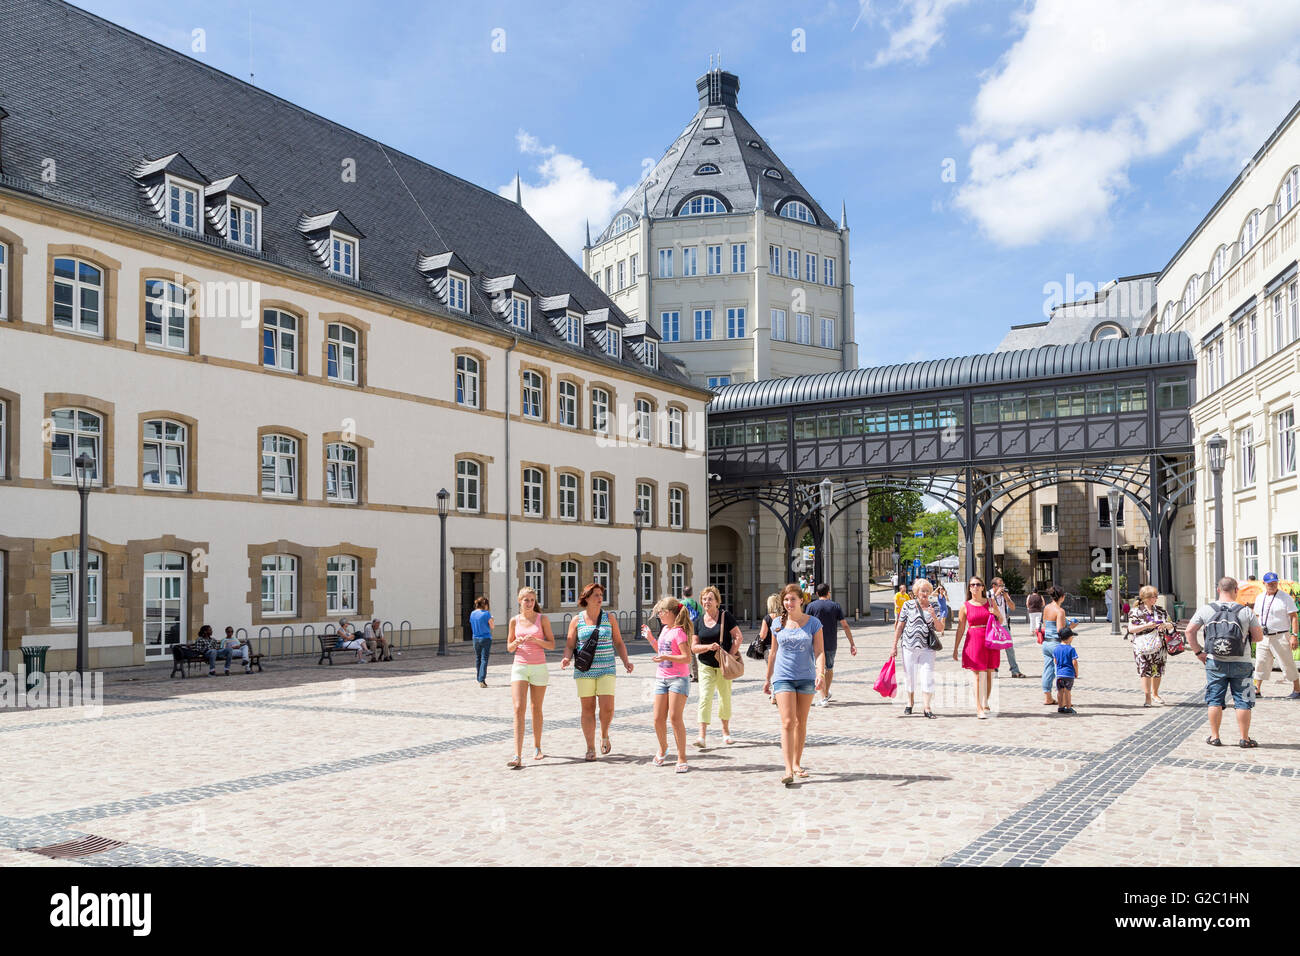 People walking through square, Luxembourg - Stock Image